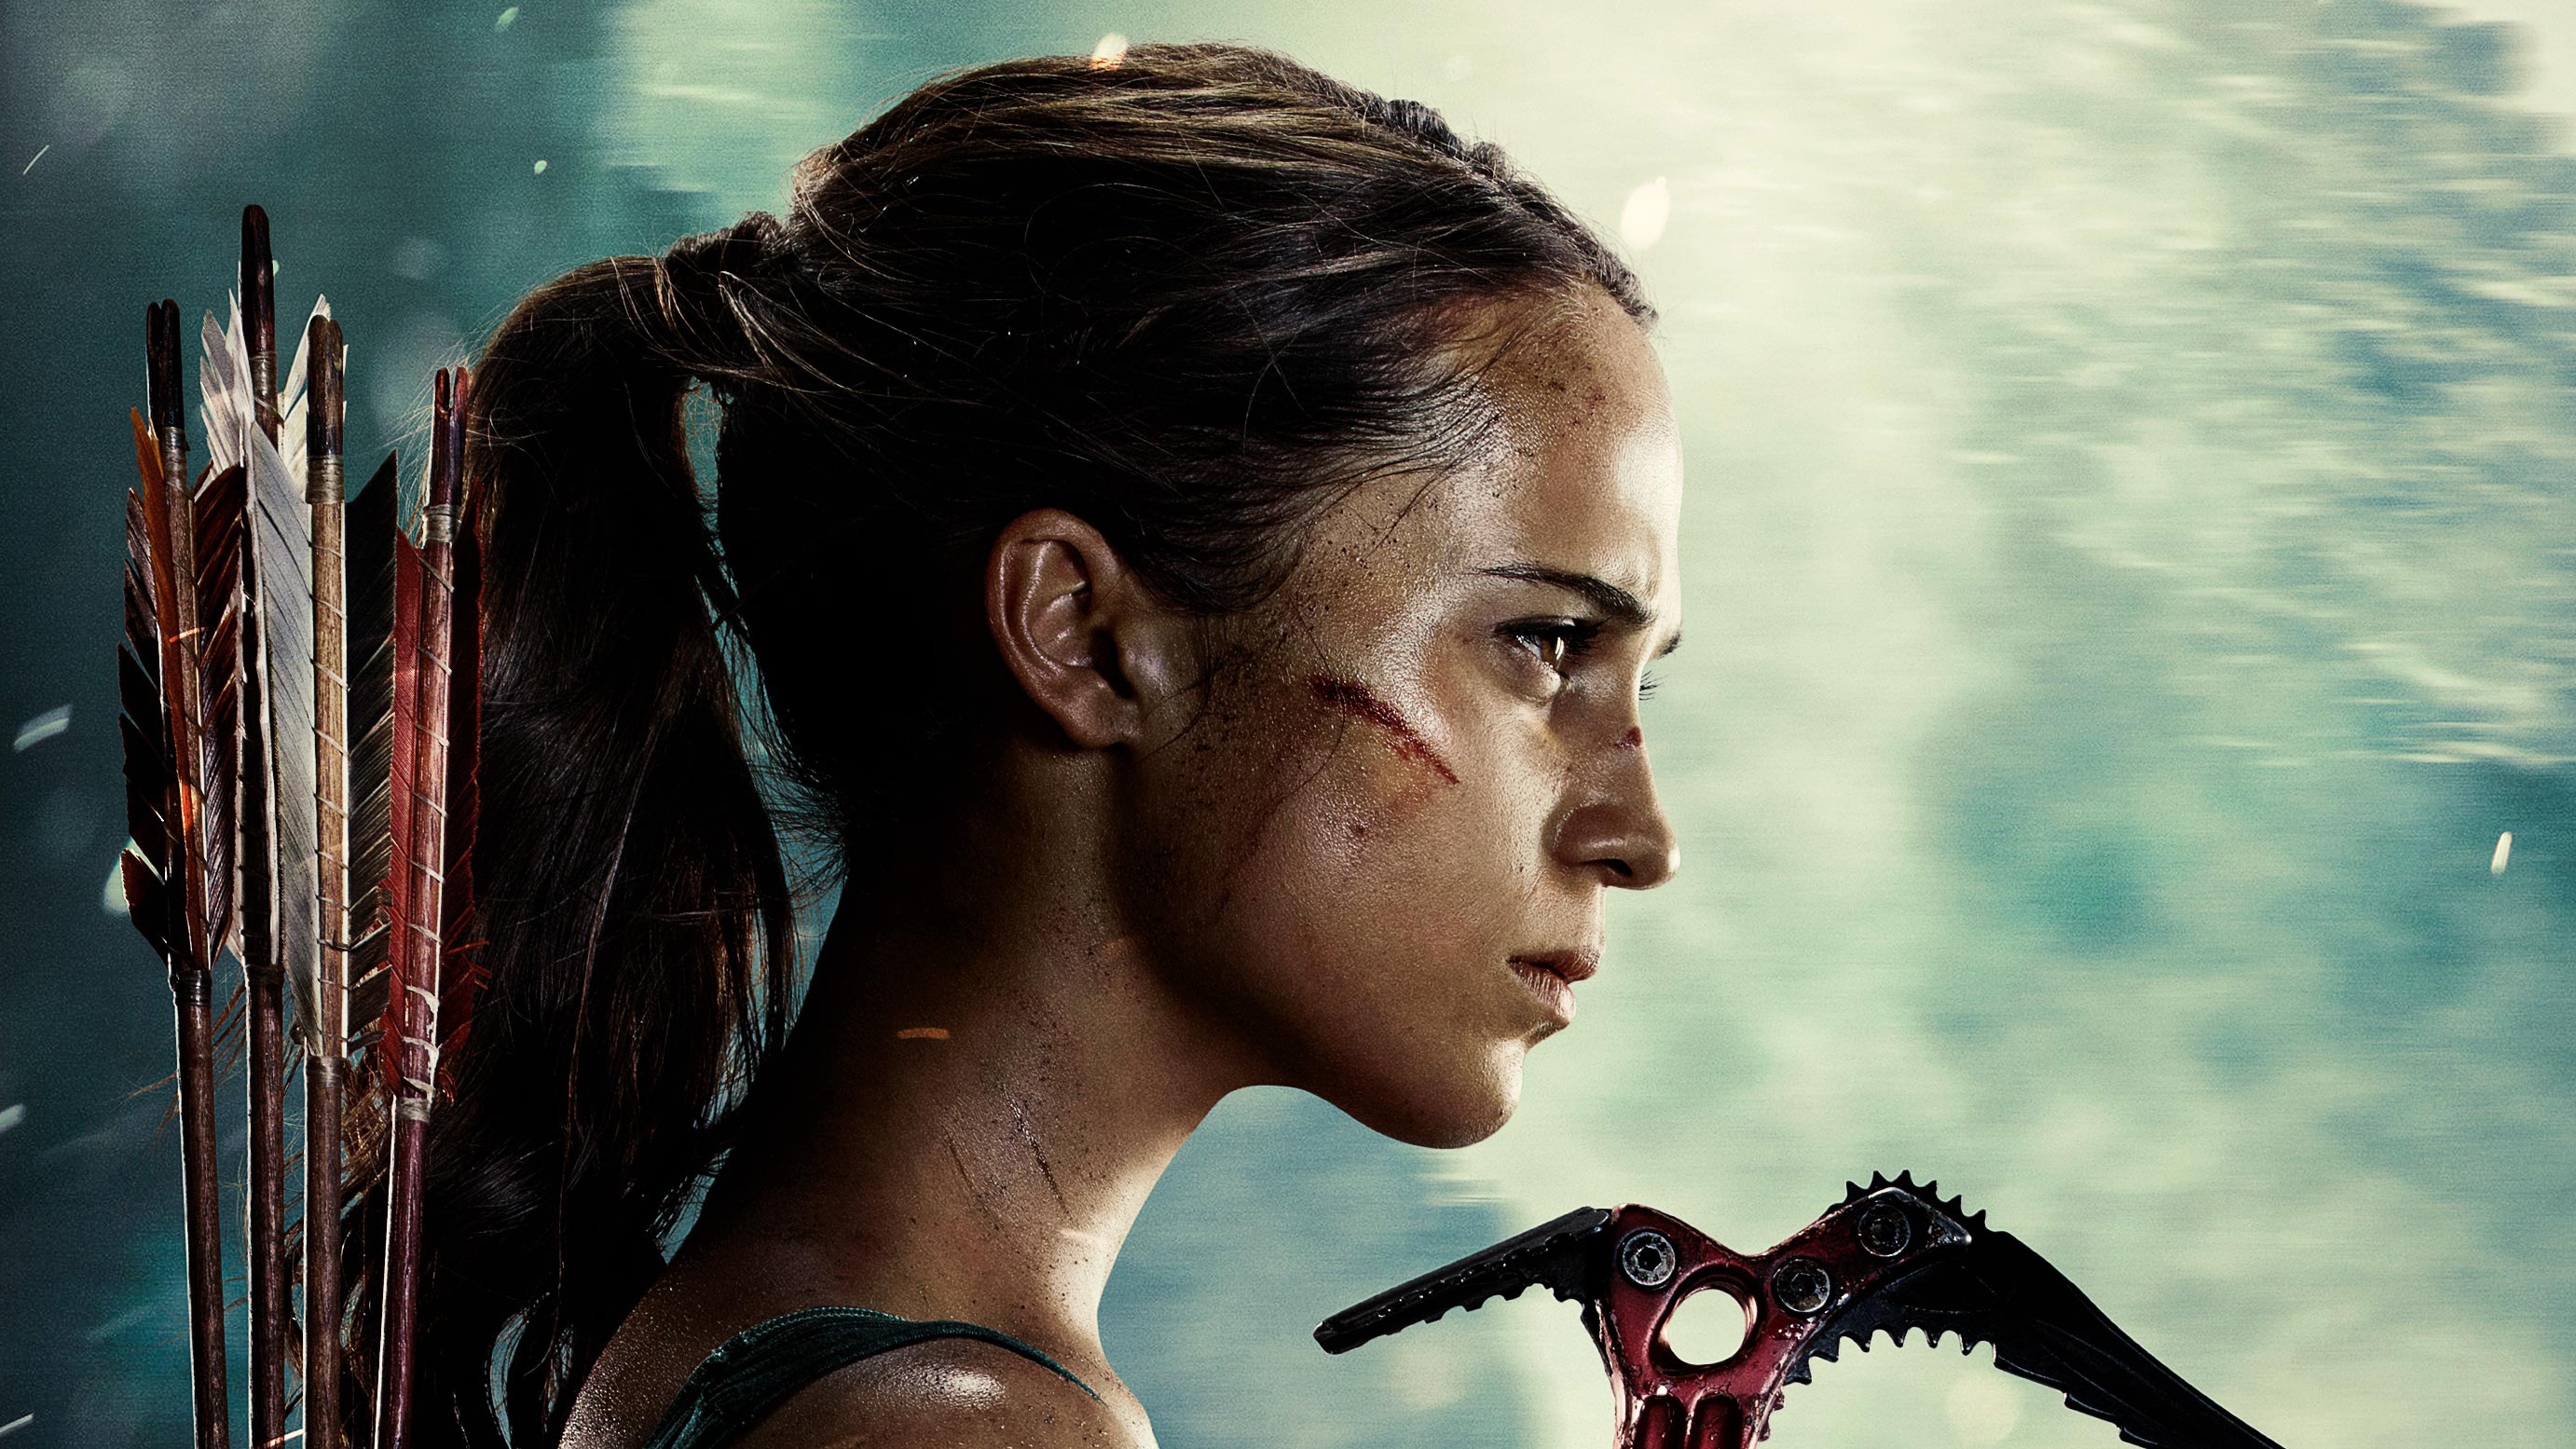 Tomb Raider 2018 Movie Hd Movies 4k Wallpapers Images